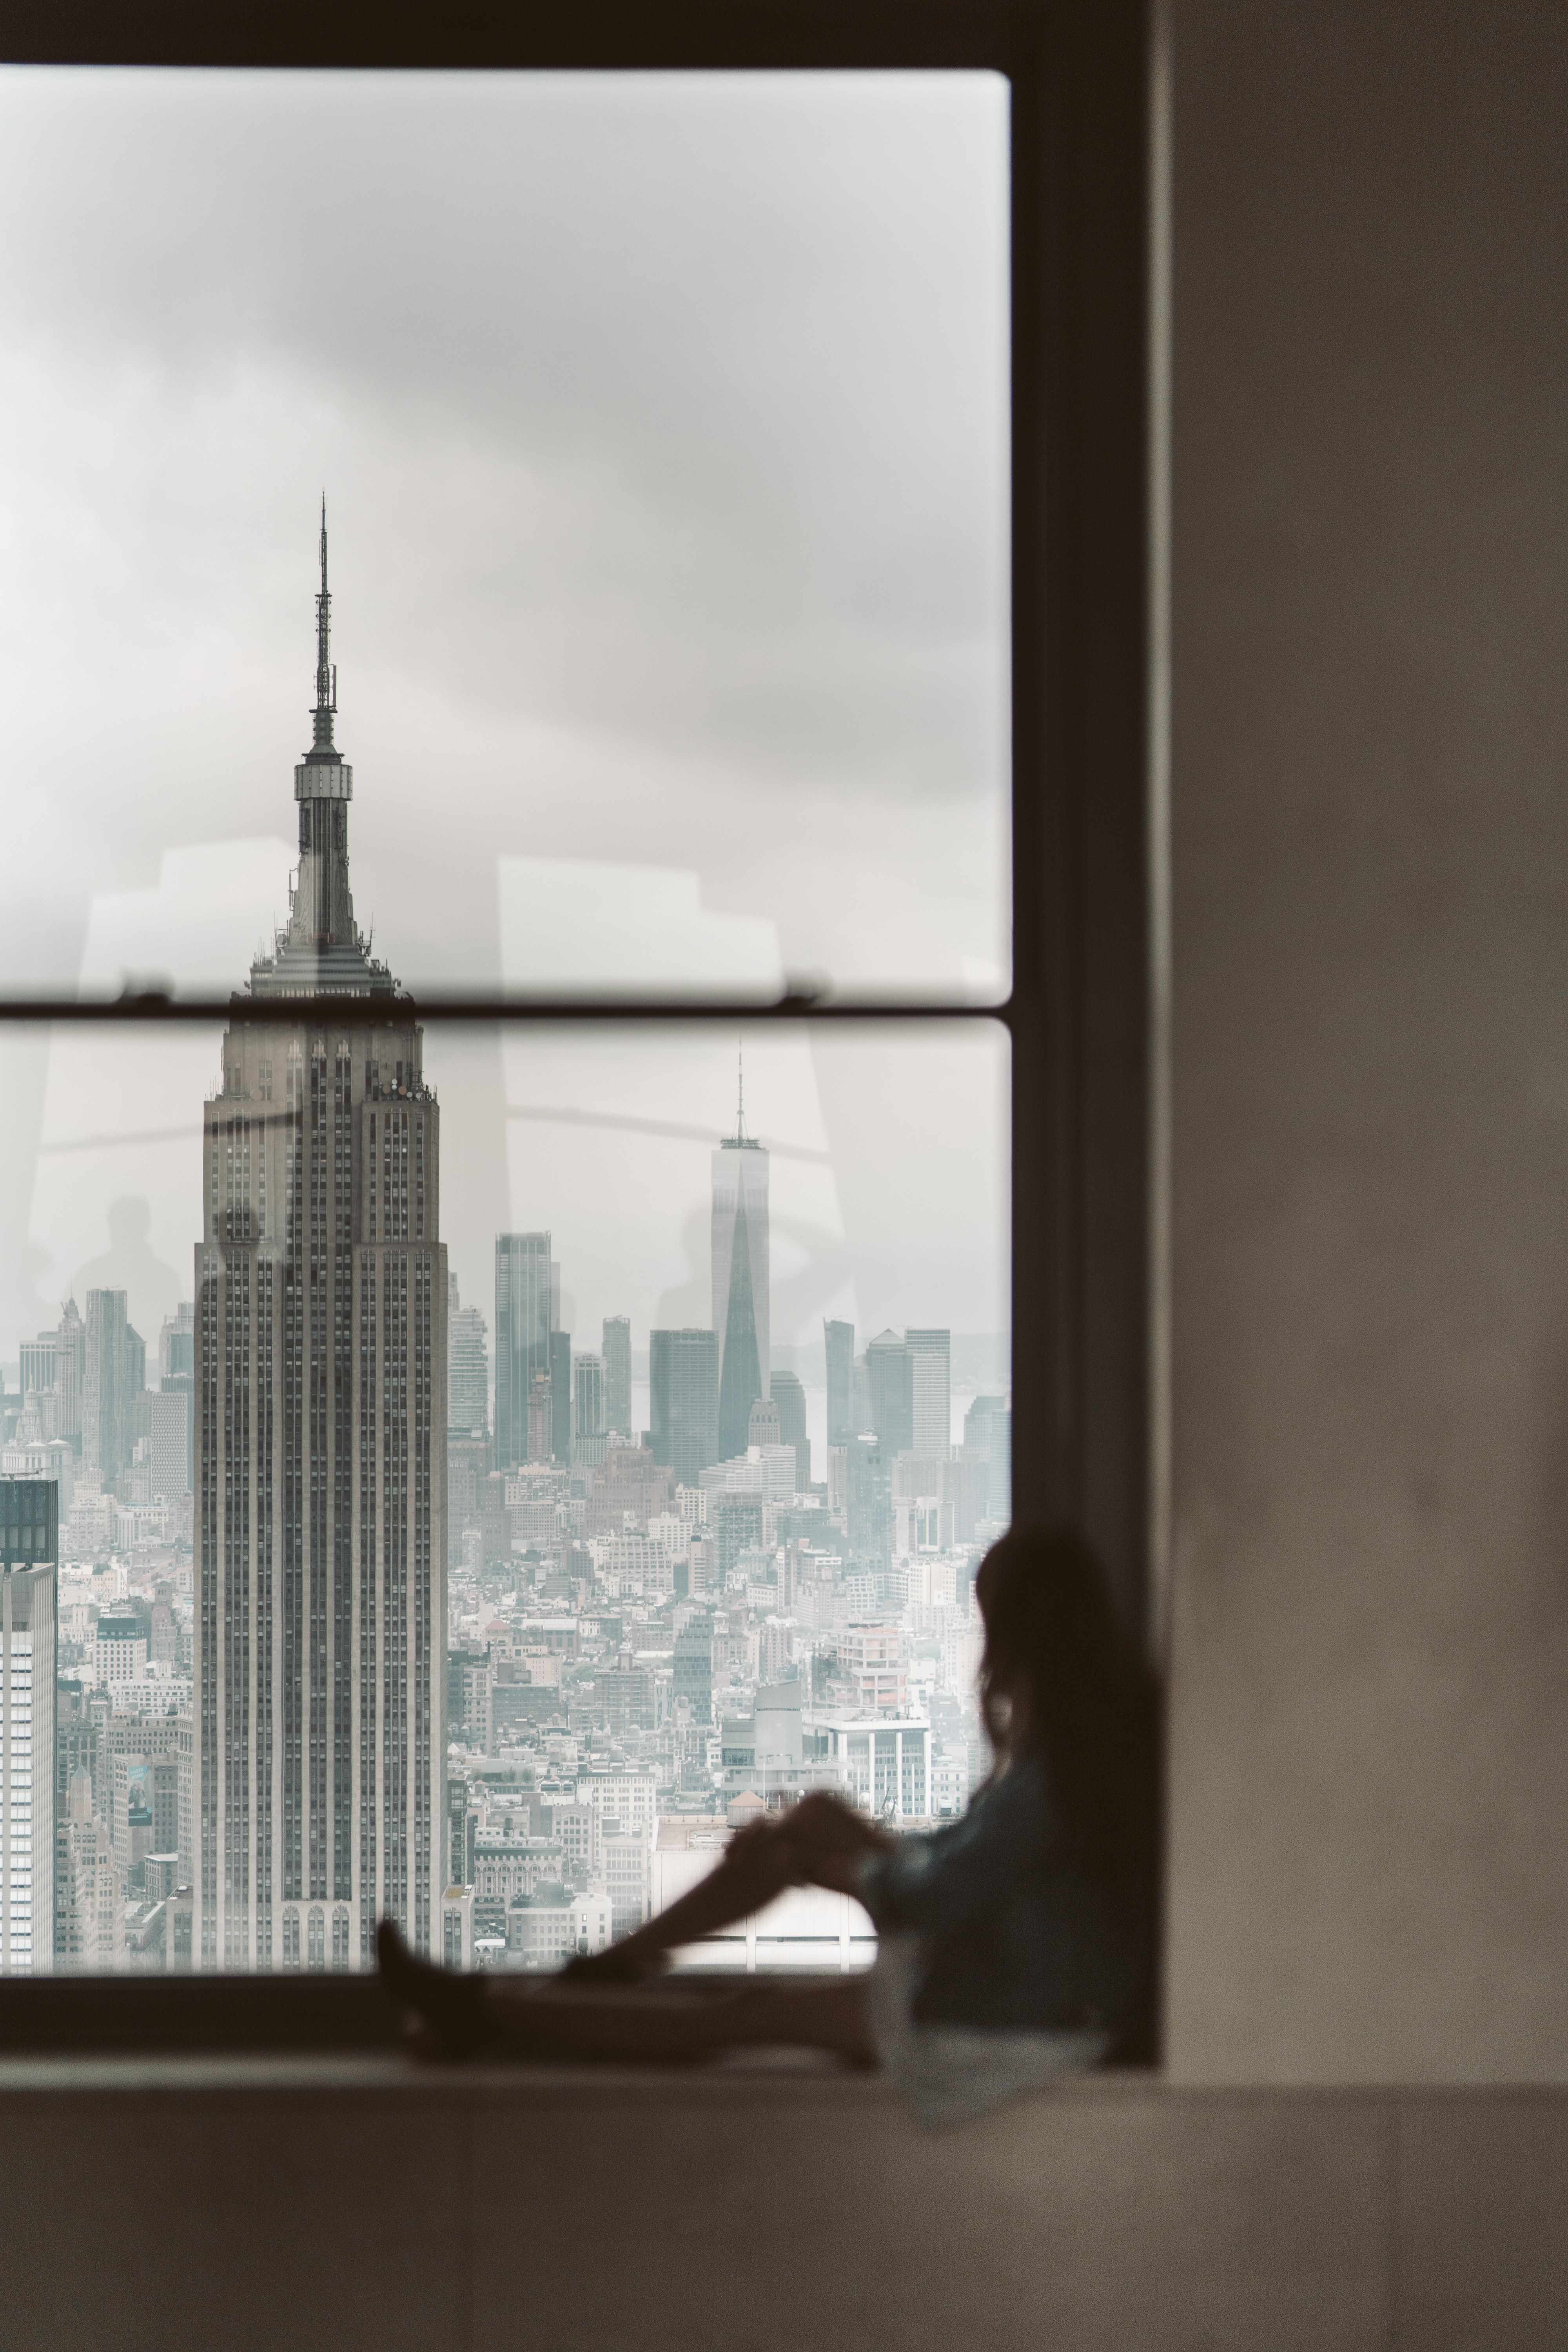 woman-sitting-at-window-sill-looking-out-the-window-at-new-3889873